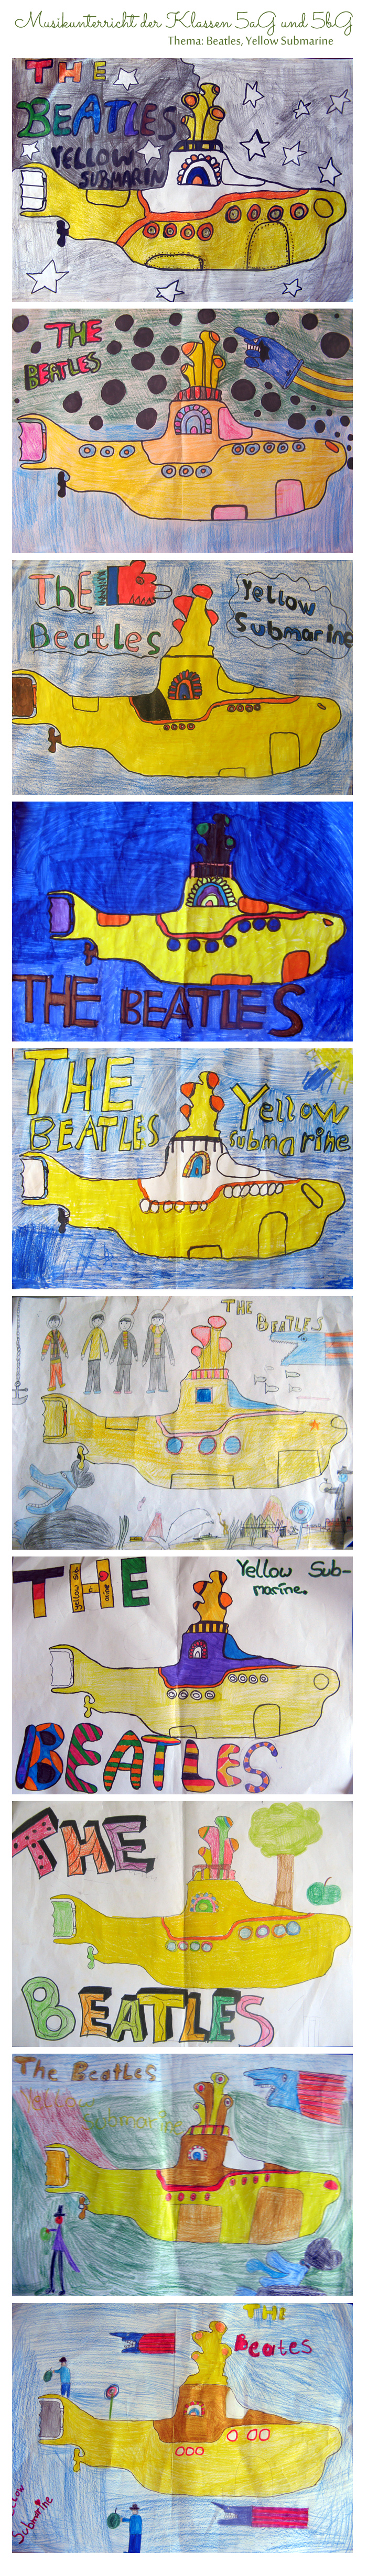 homepage-yellowsubmarine5ag5bg-2014-06